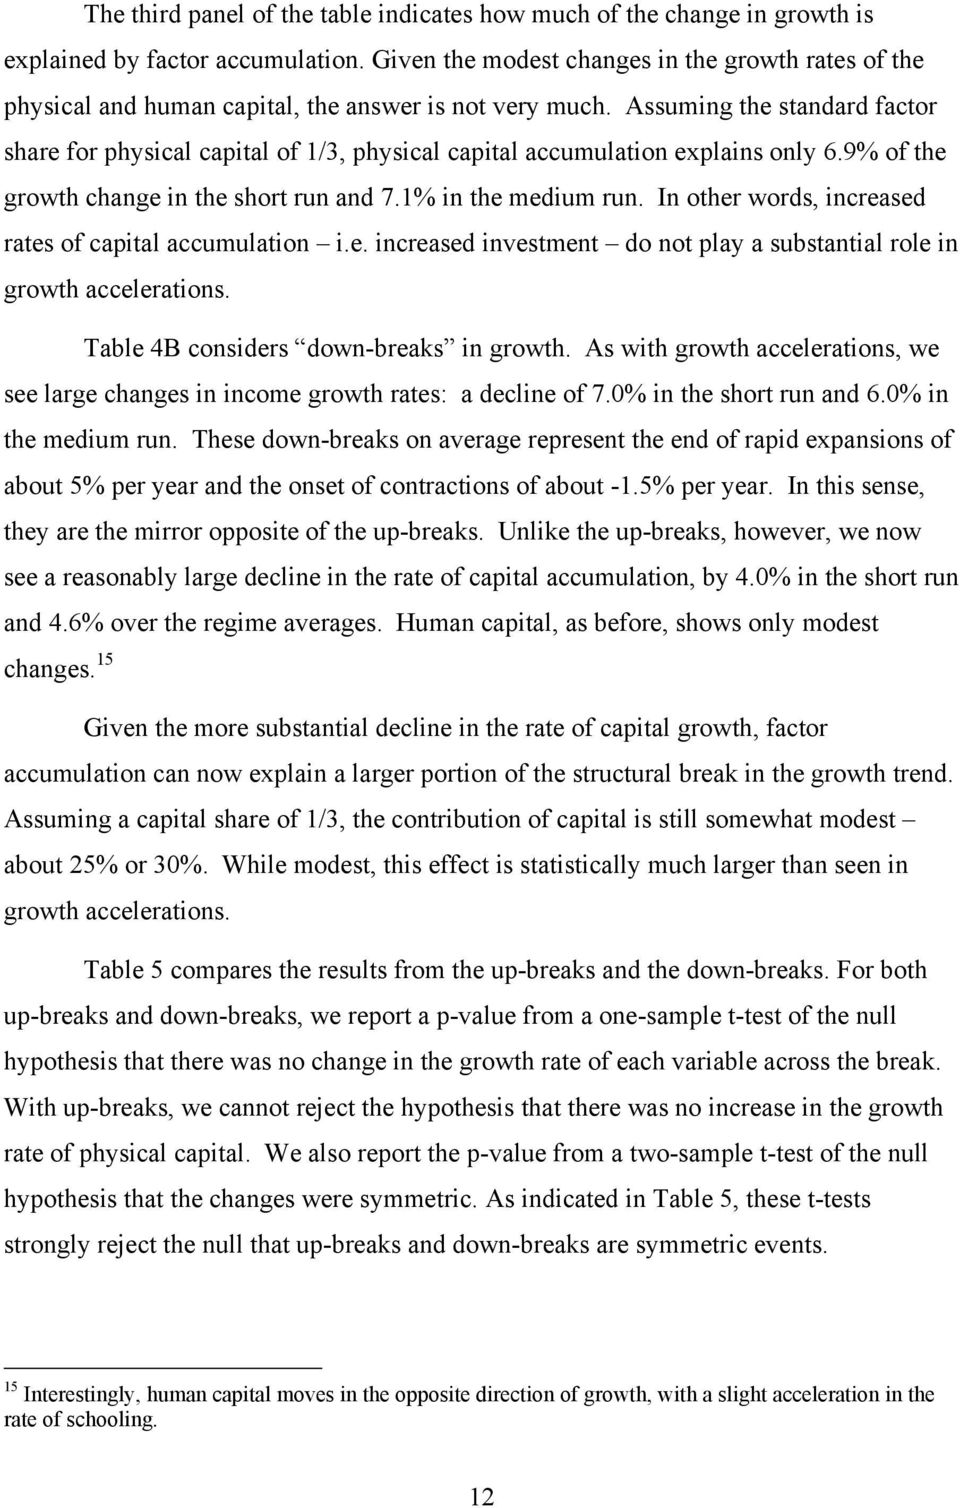 Assuming the standard factor share for physical capital of 1/3, physical capital accumulation explains only 6.9% of the growth change in the short run and 7.1% in the medium run.